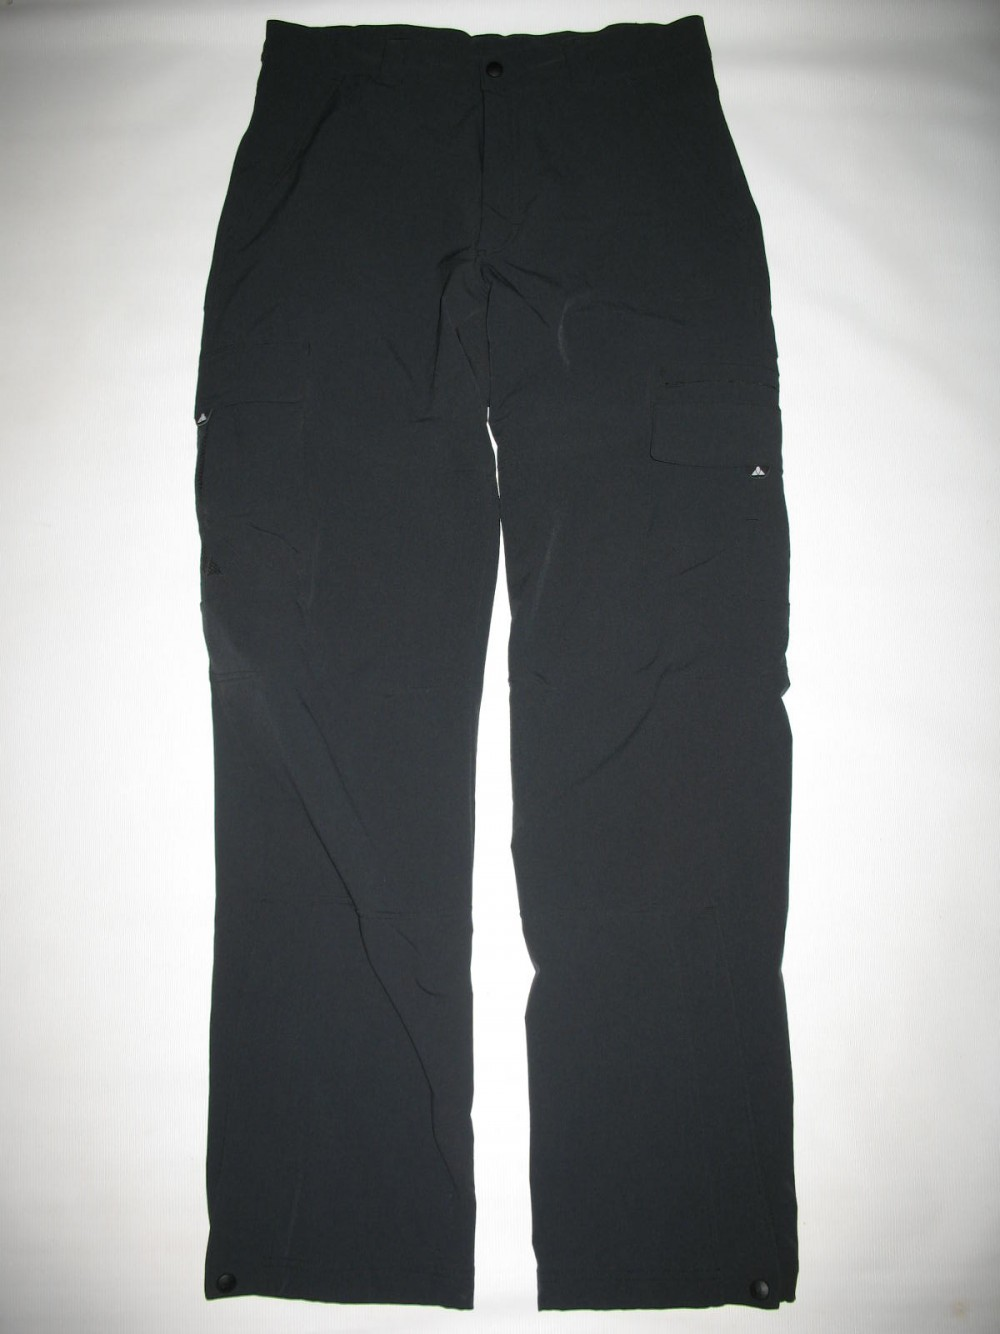 Штаны VAUDE softshell outdoor pants (размер 46/M) - 1